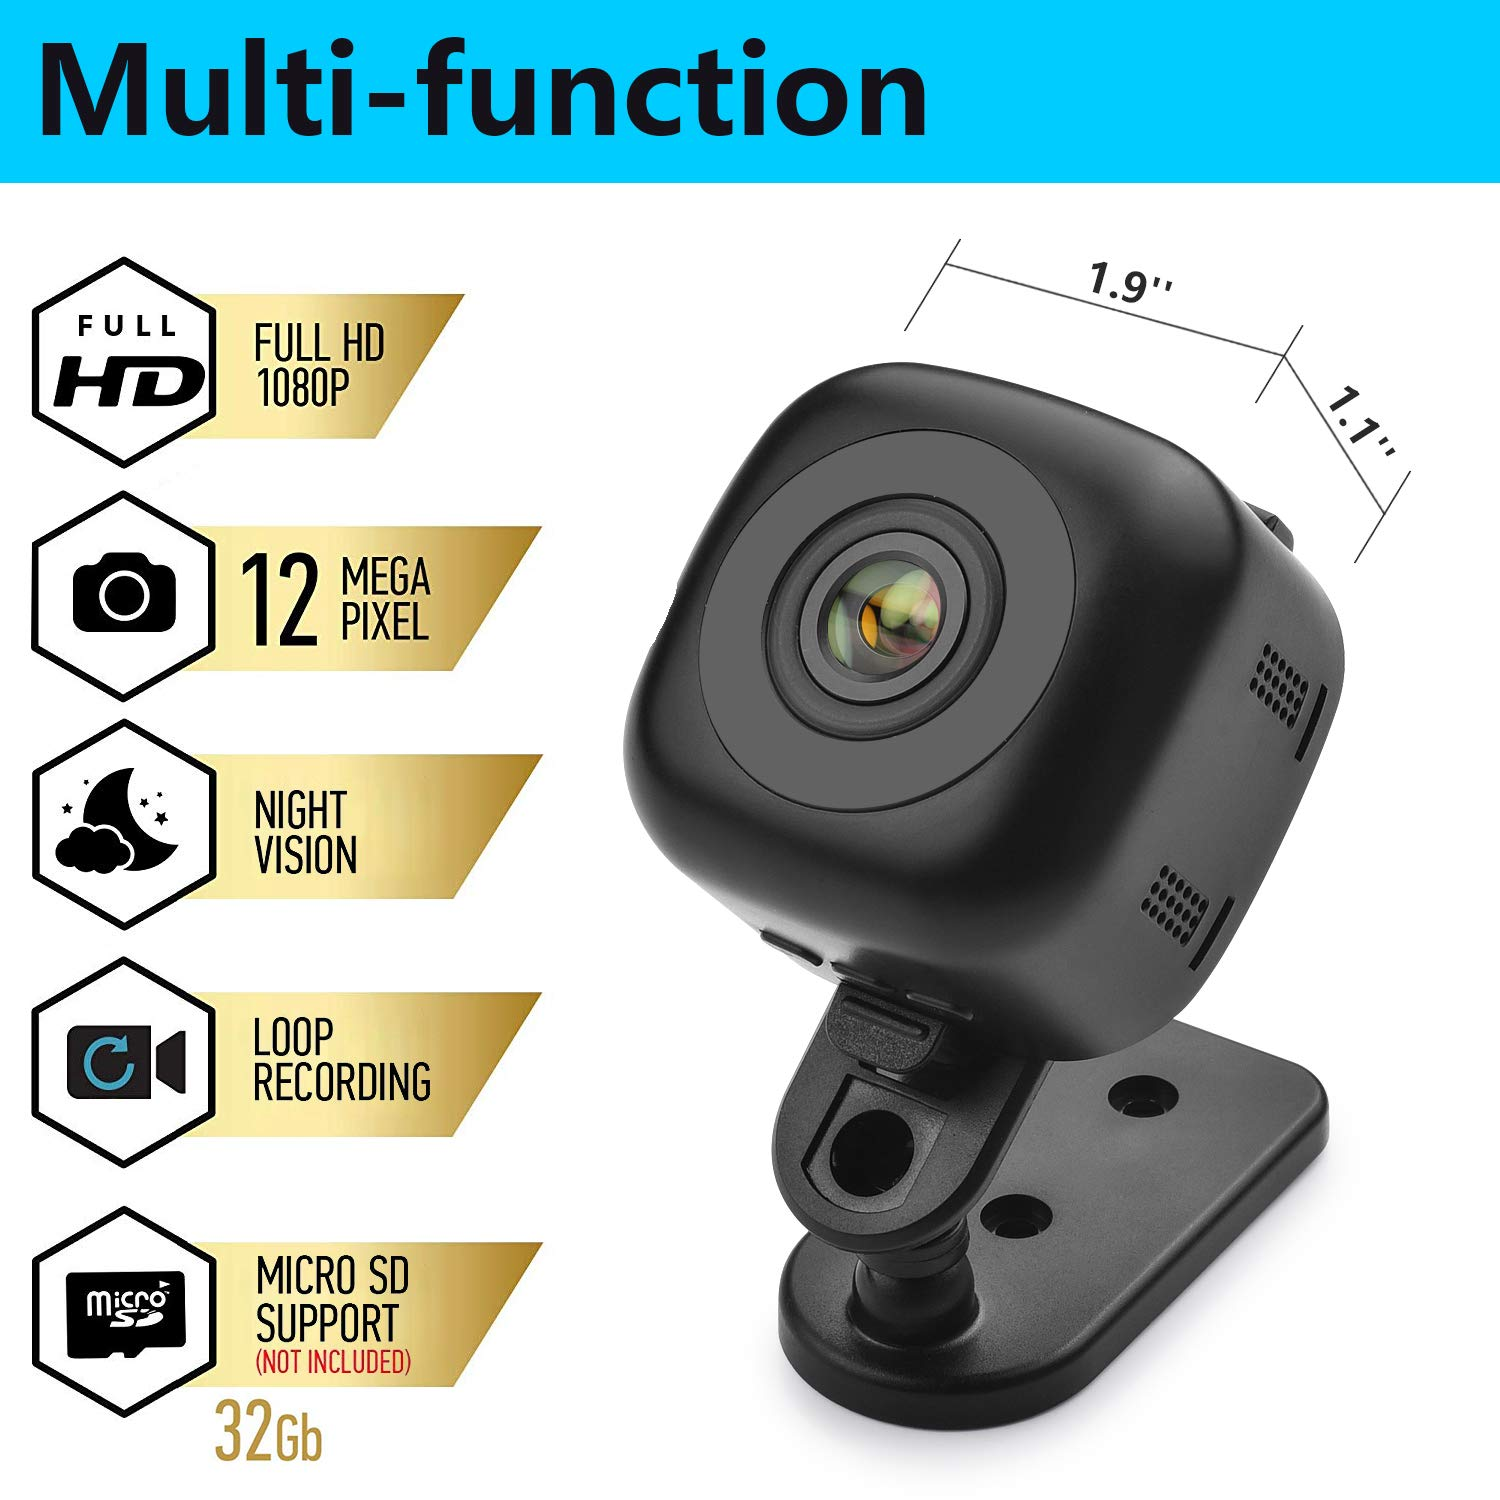 Mini Spy Hidden Camera, OUMEIOU 1080P Portable HD Spy Camera Nanny Camera Cop Cam Car Camera with Night Vision,Perfect Indoor Covert Security Camera for Home,Car,Drone and Office